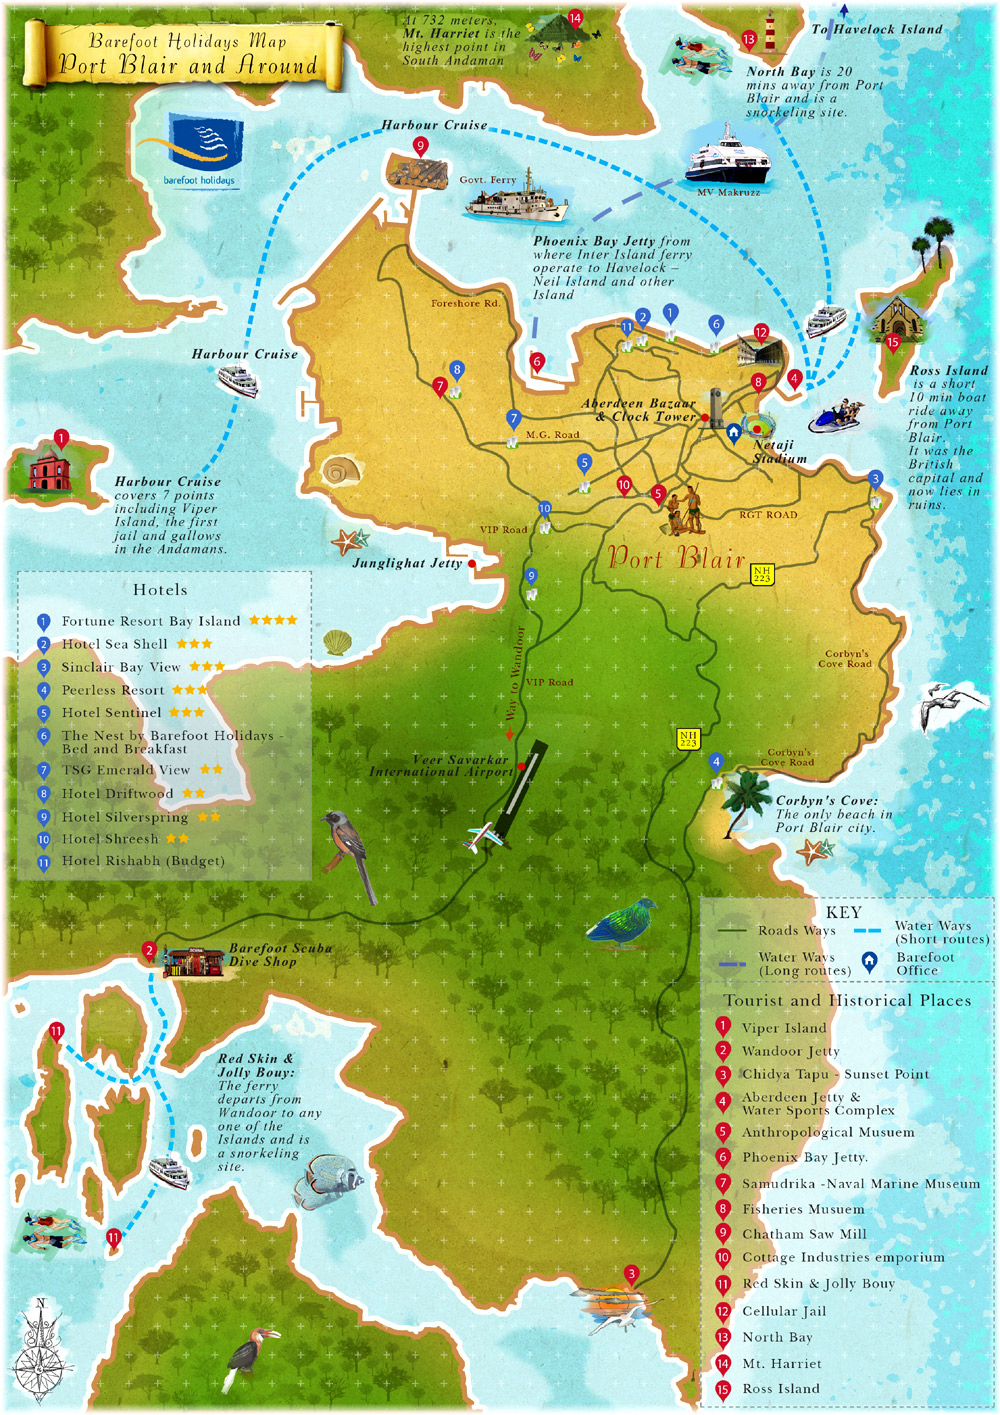 Barefoot Holidays Maps